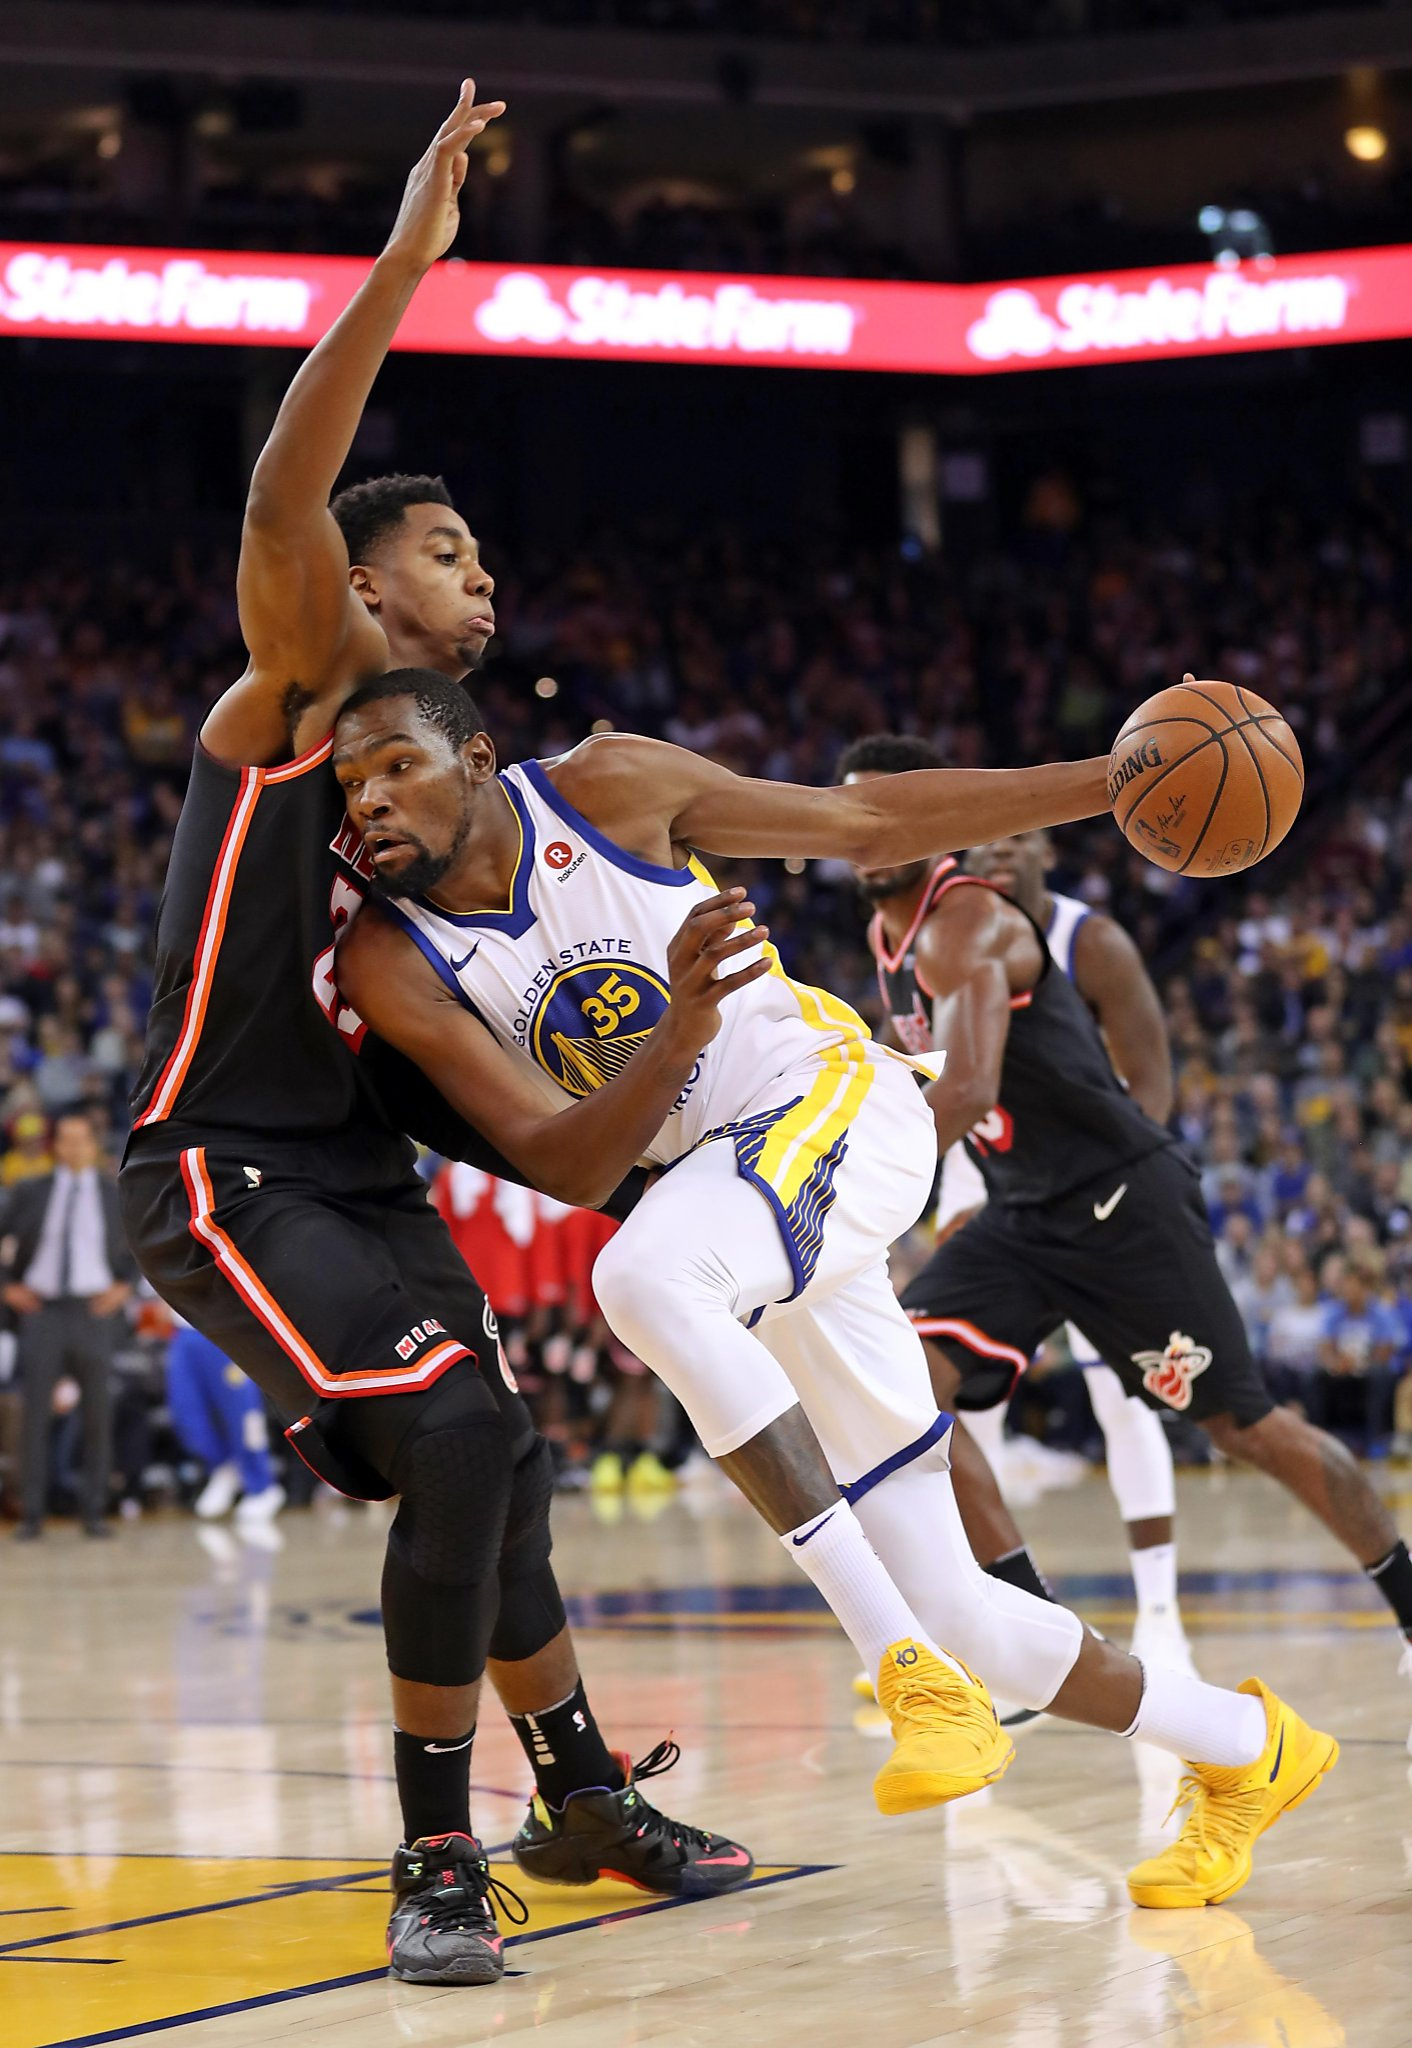 cb92418217f4 Warriors  Kevin Durant to miss Minnesota game with thigh contusion - The  Edwardsville Intelligencer